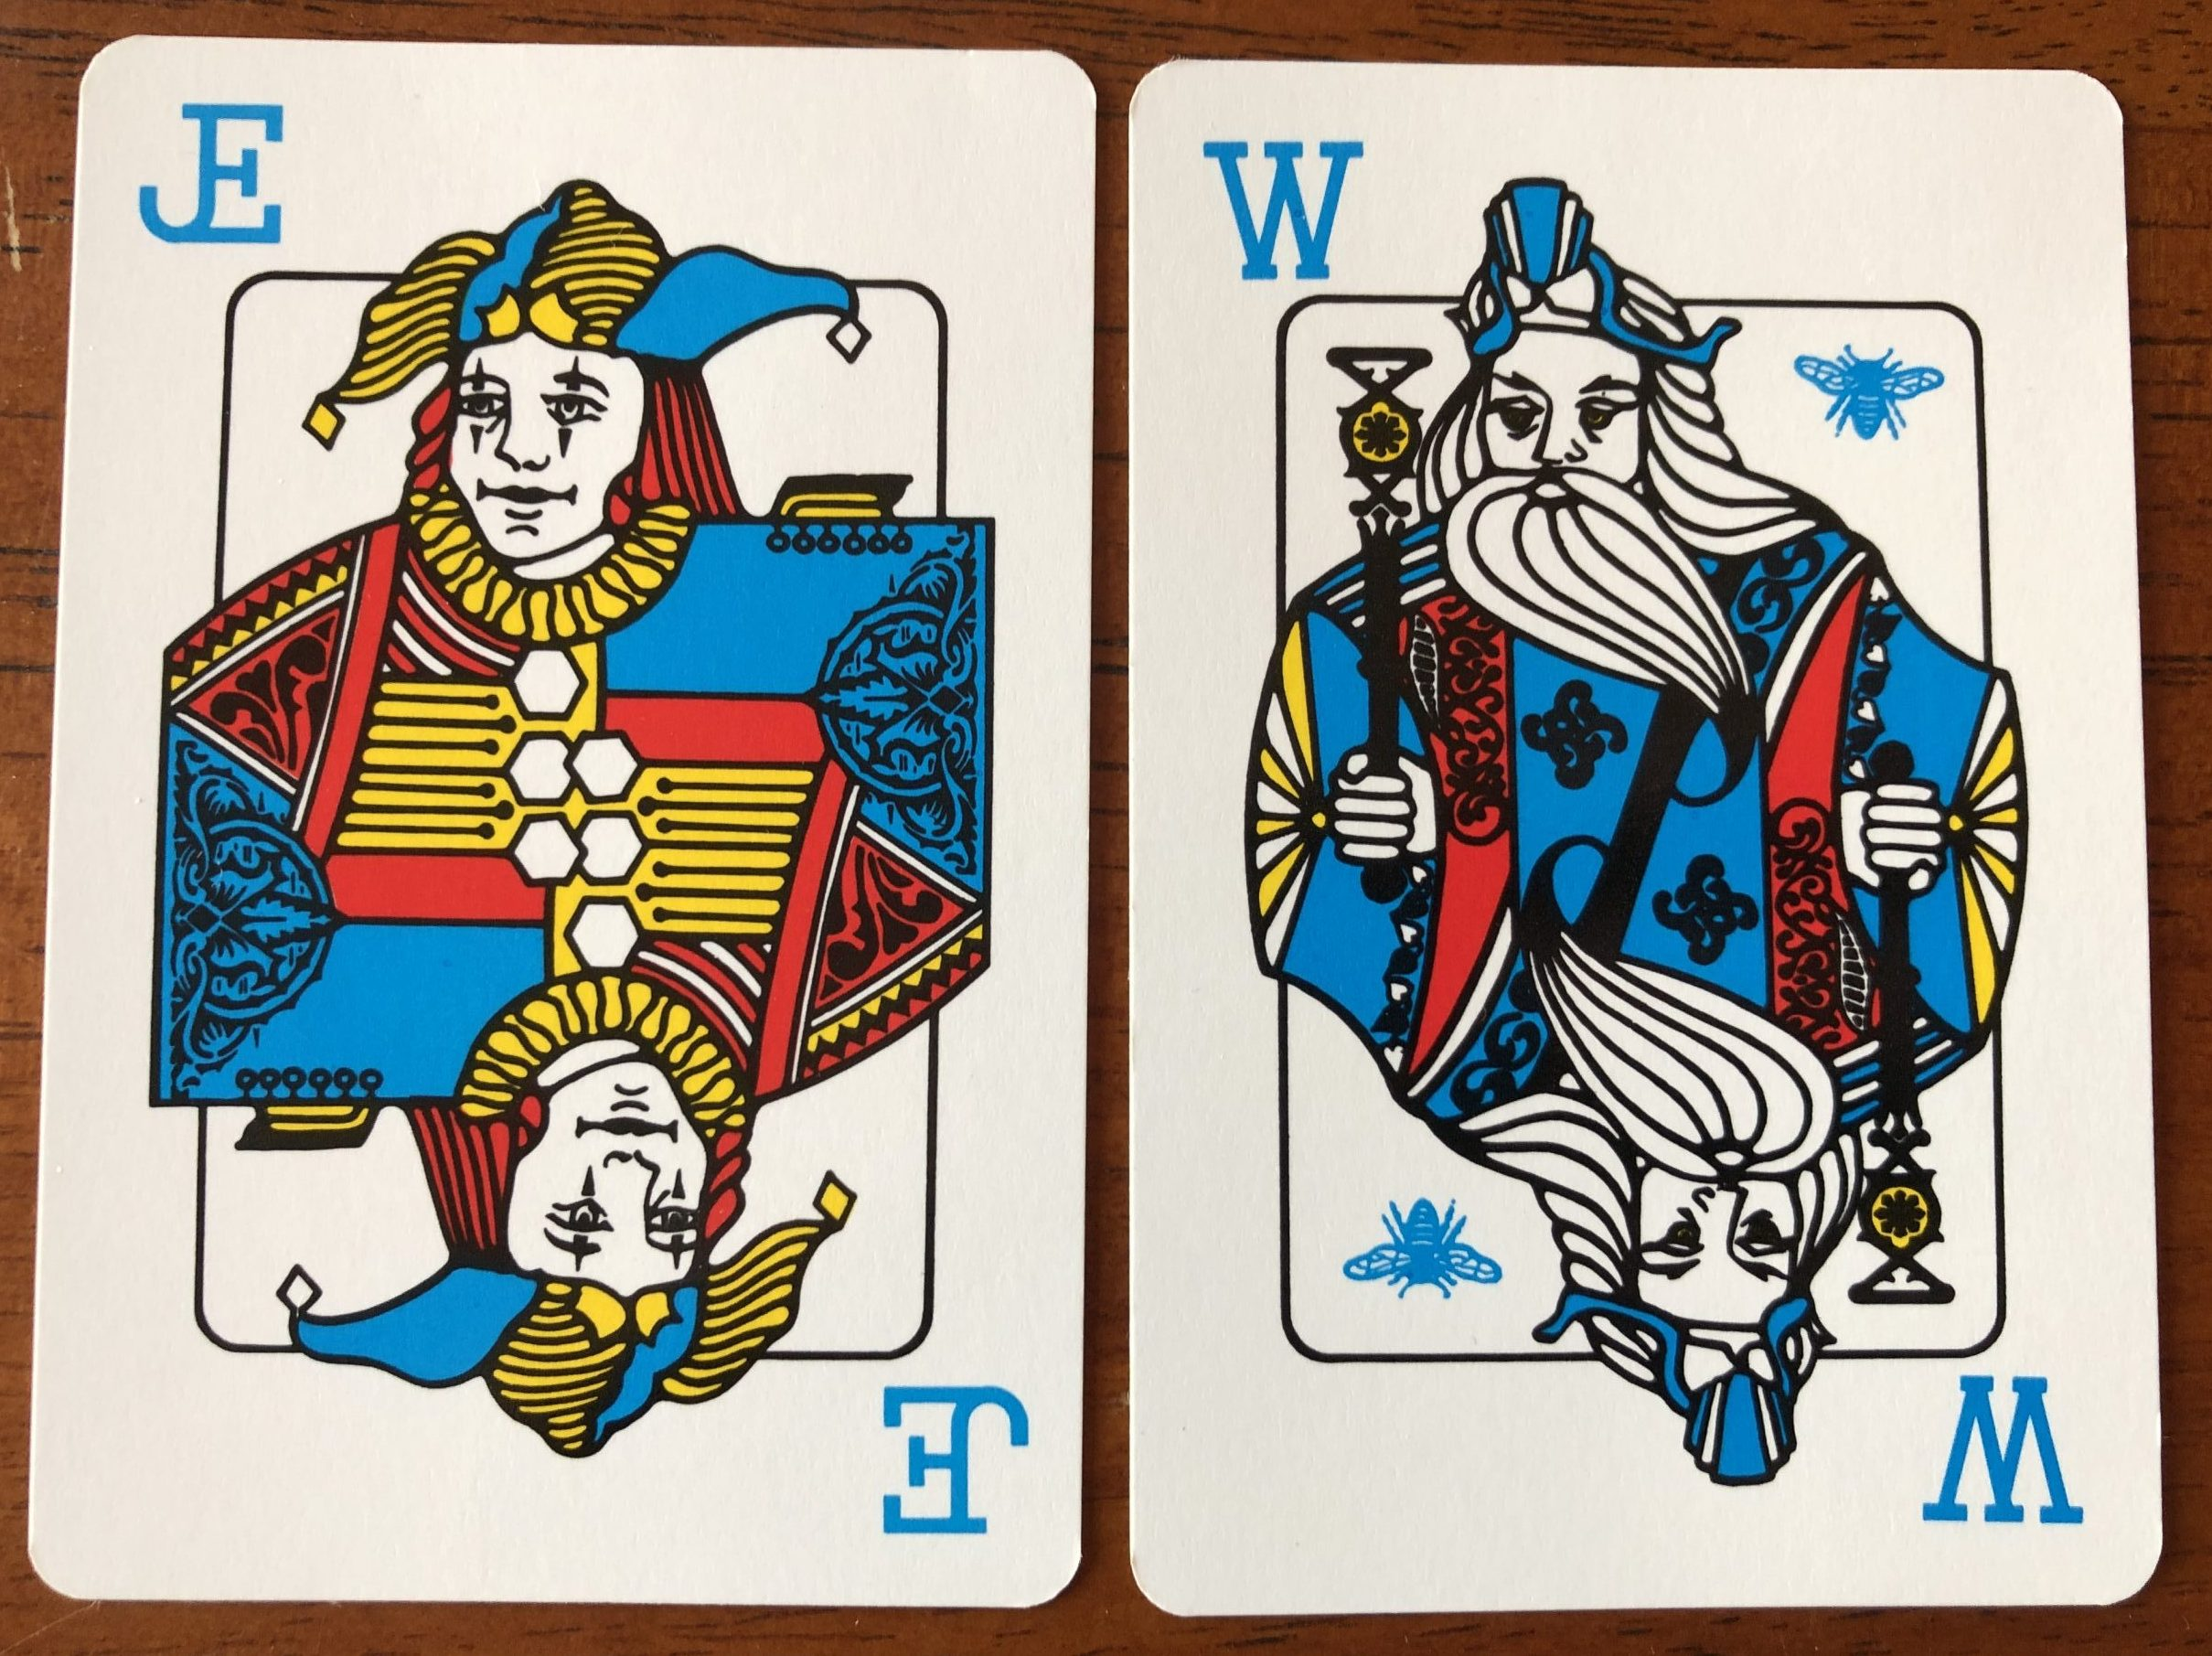 Jester card and Wizard card, for Wizard card game